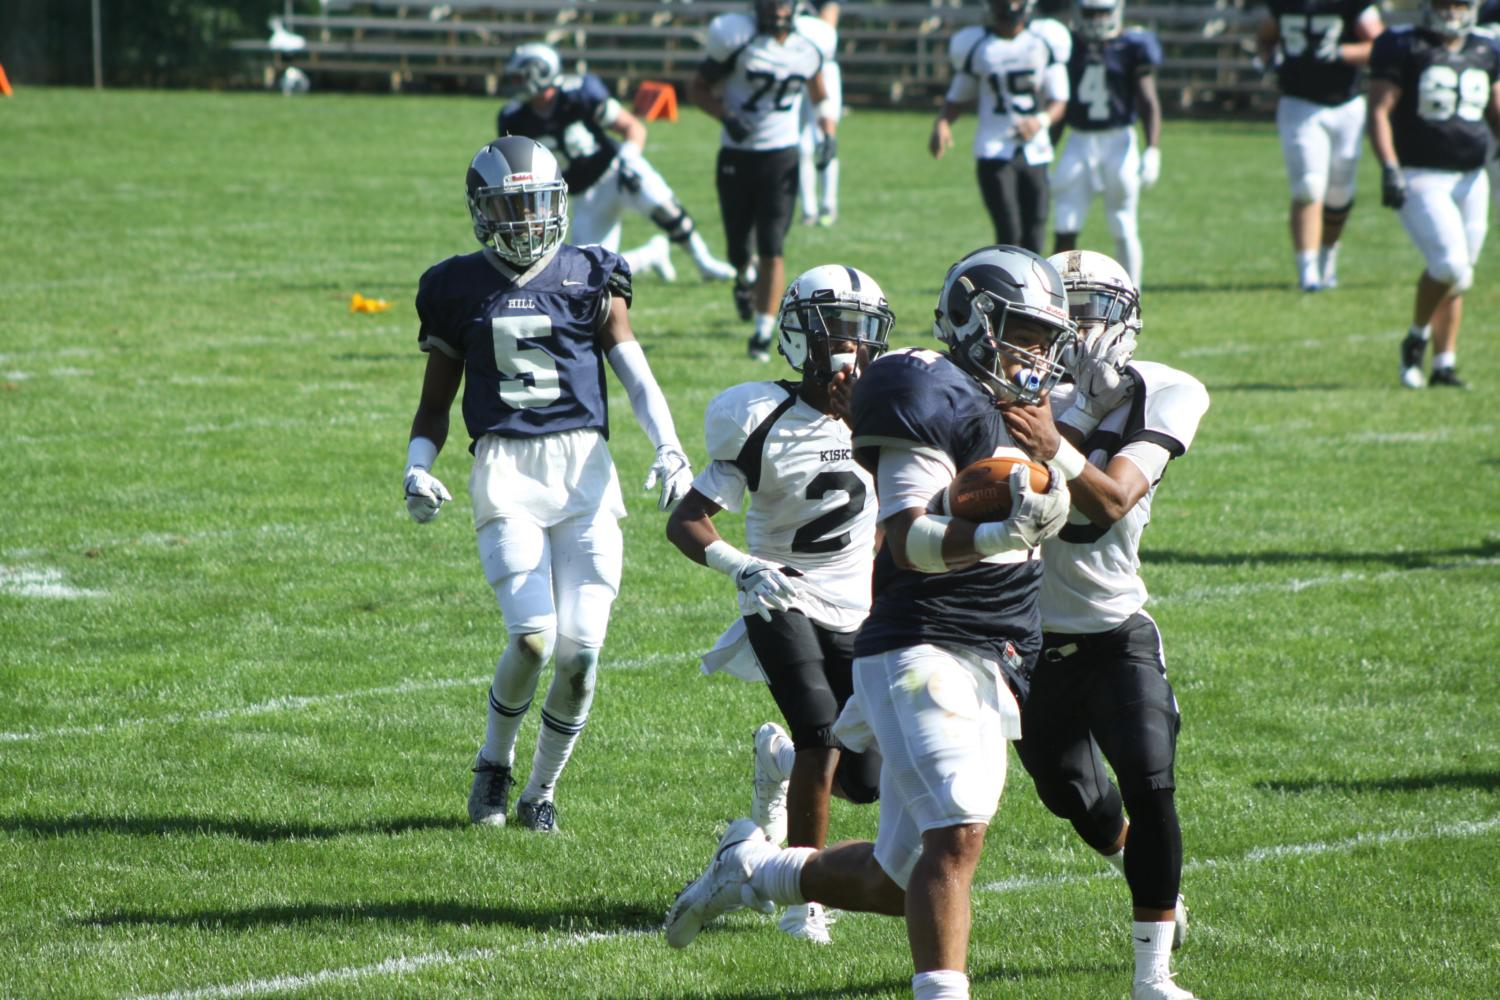 Hill Football's Uncertain Future After Various Losses